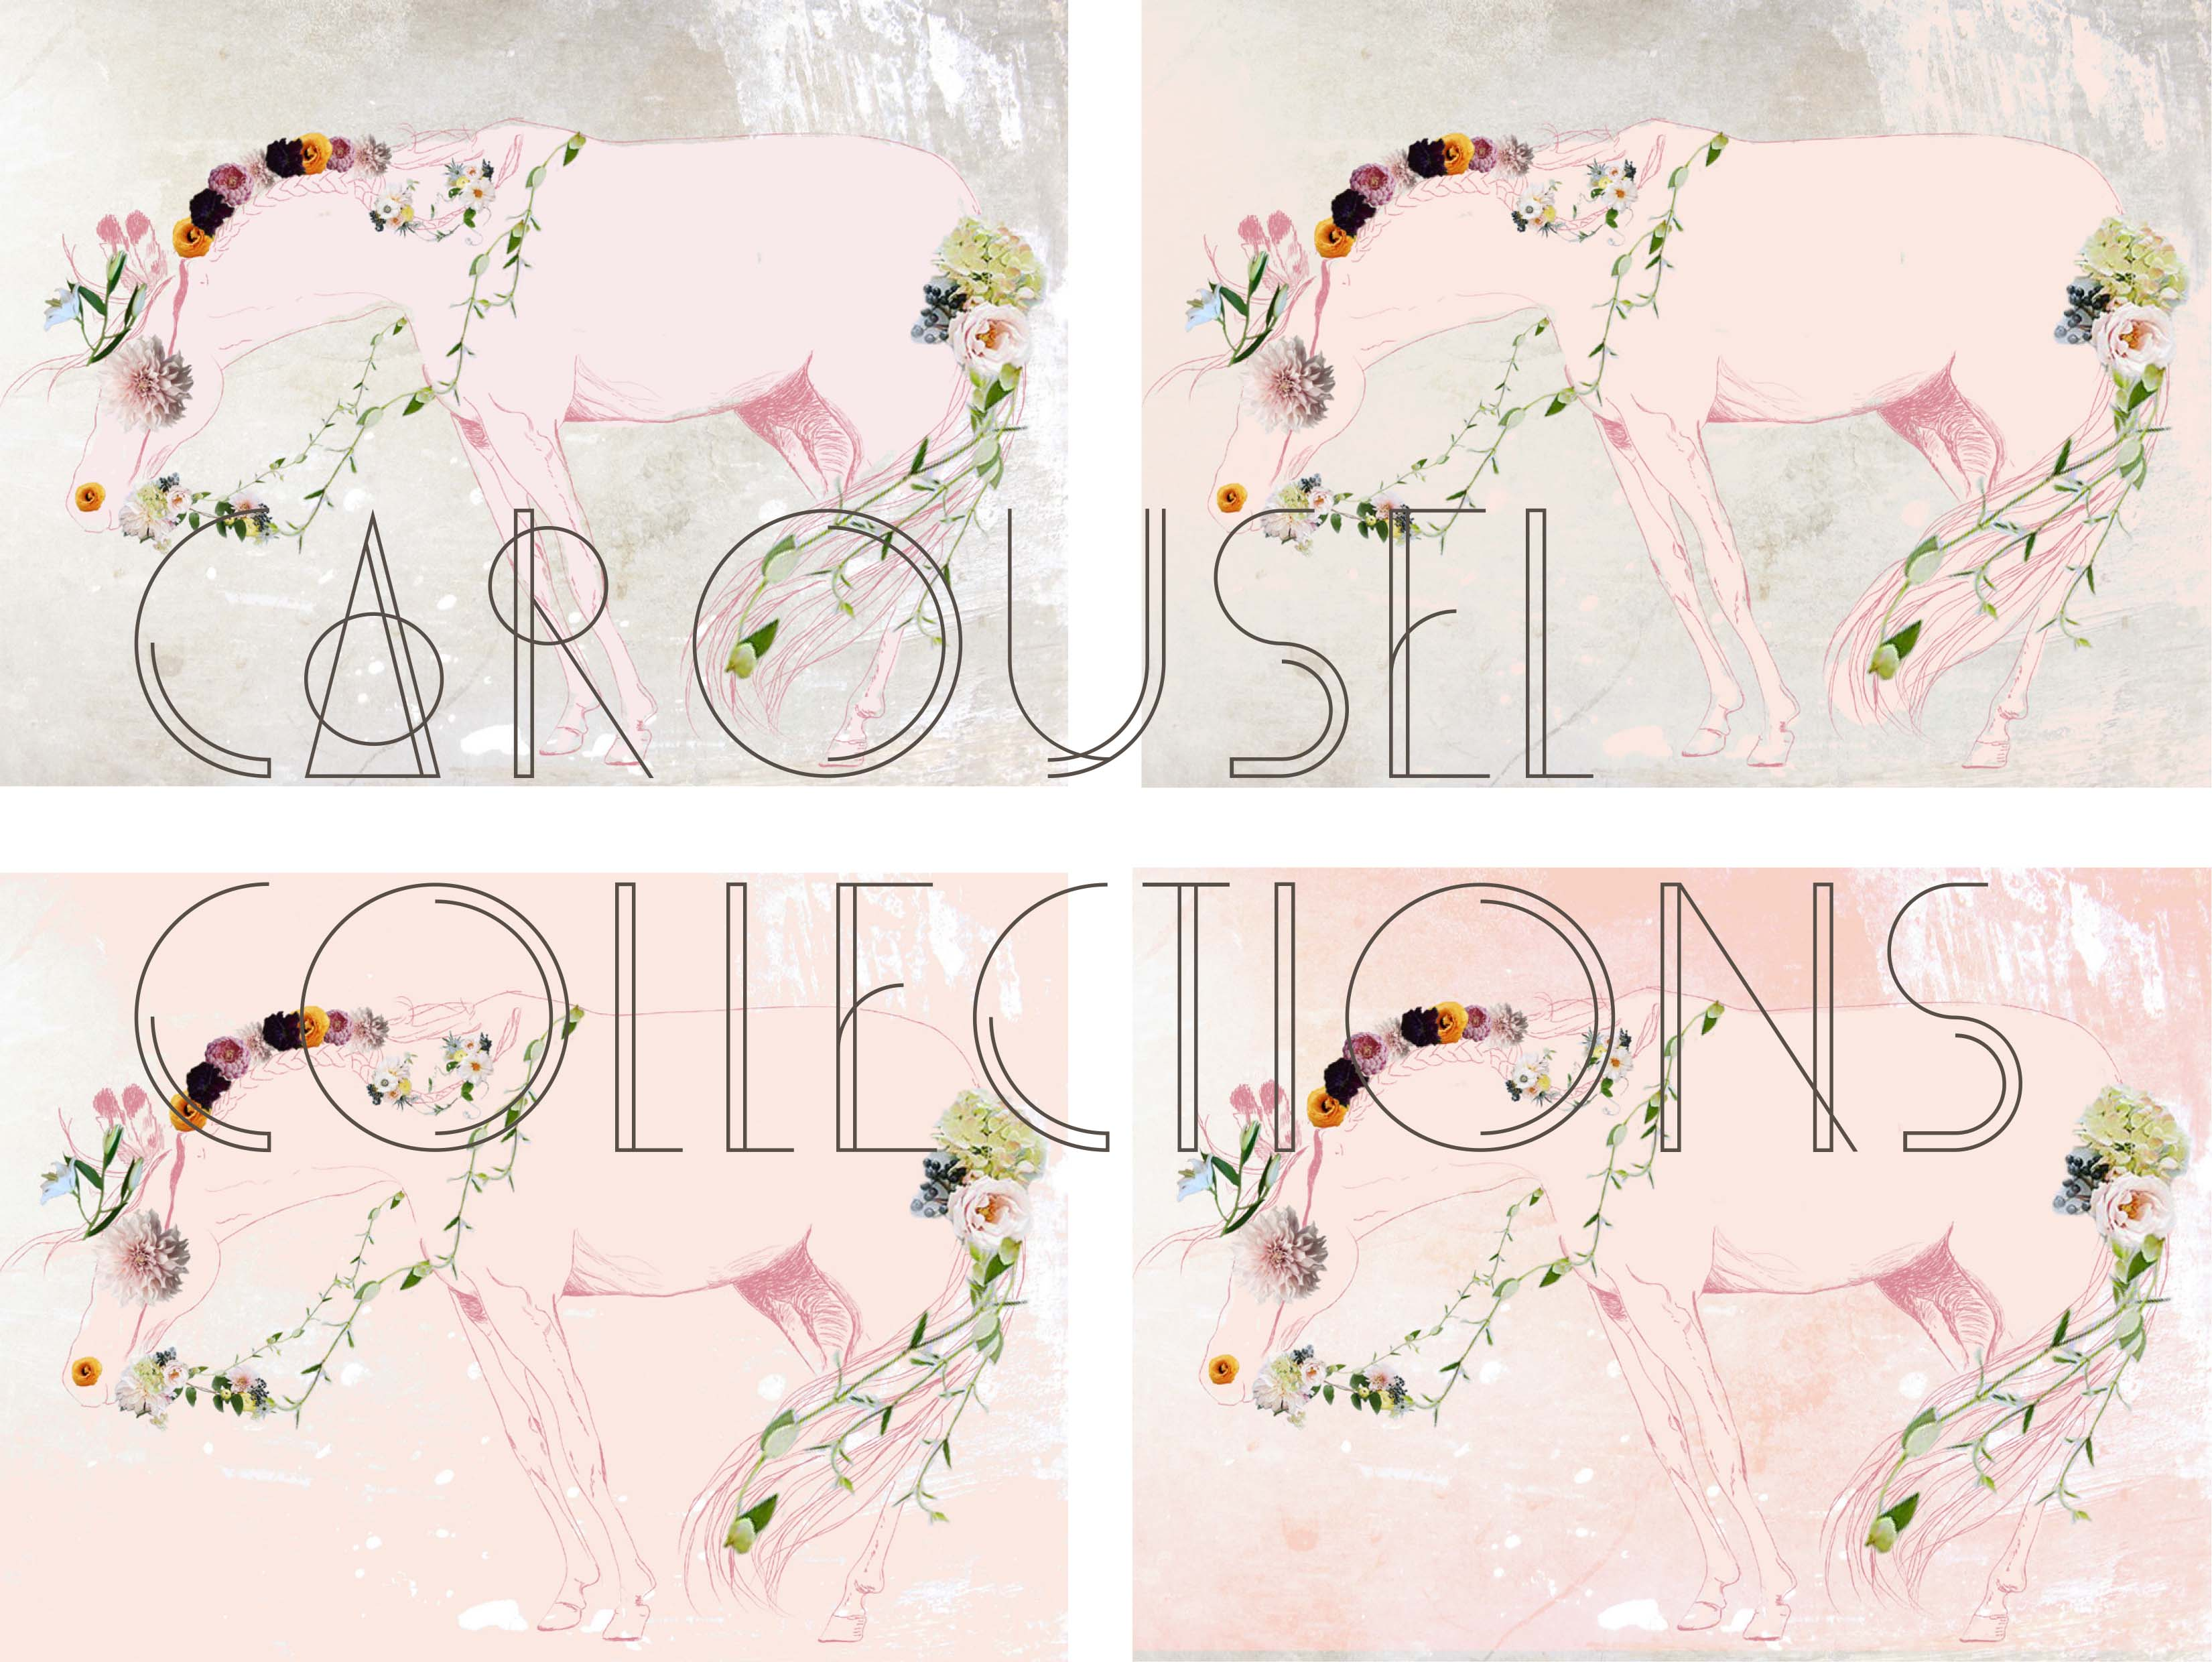 Carousel Collections